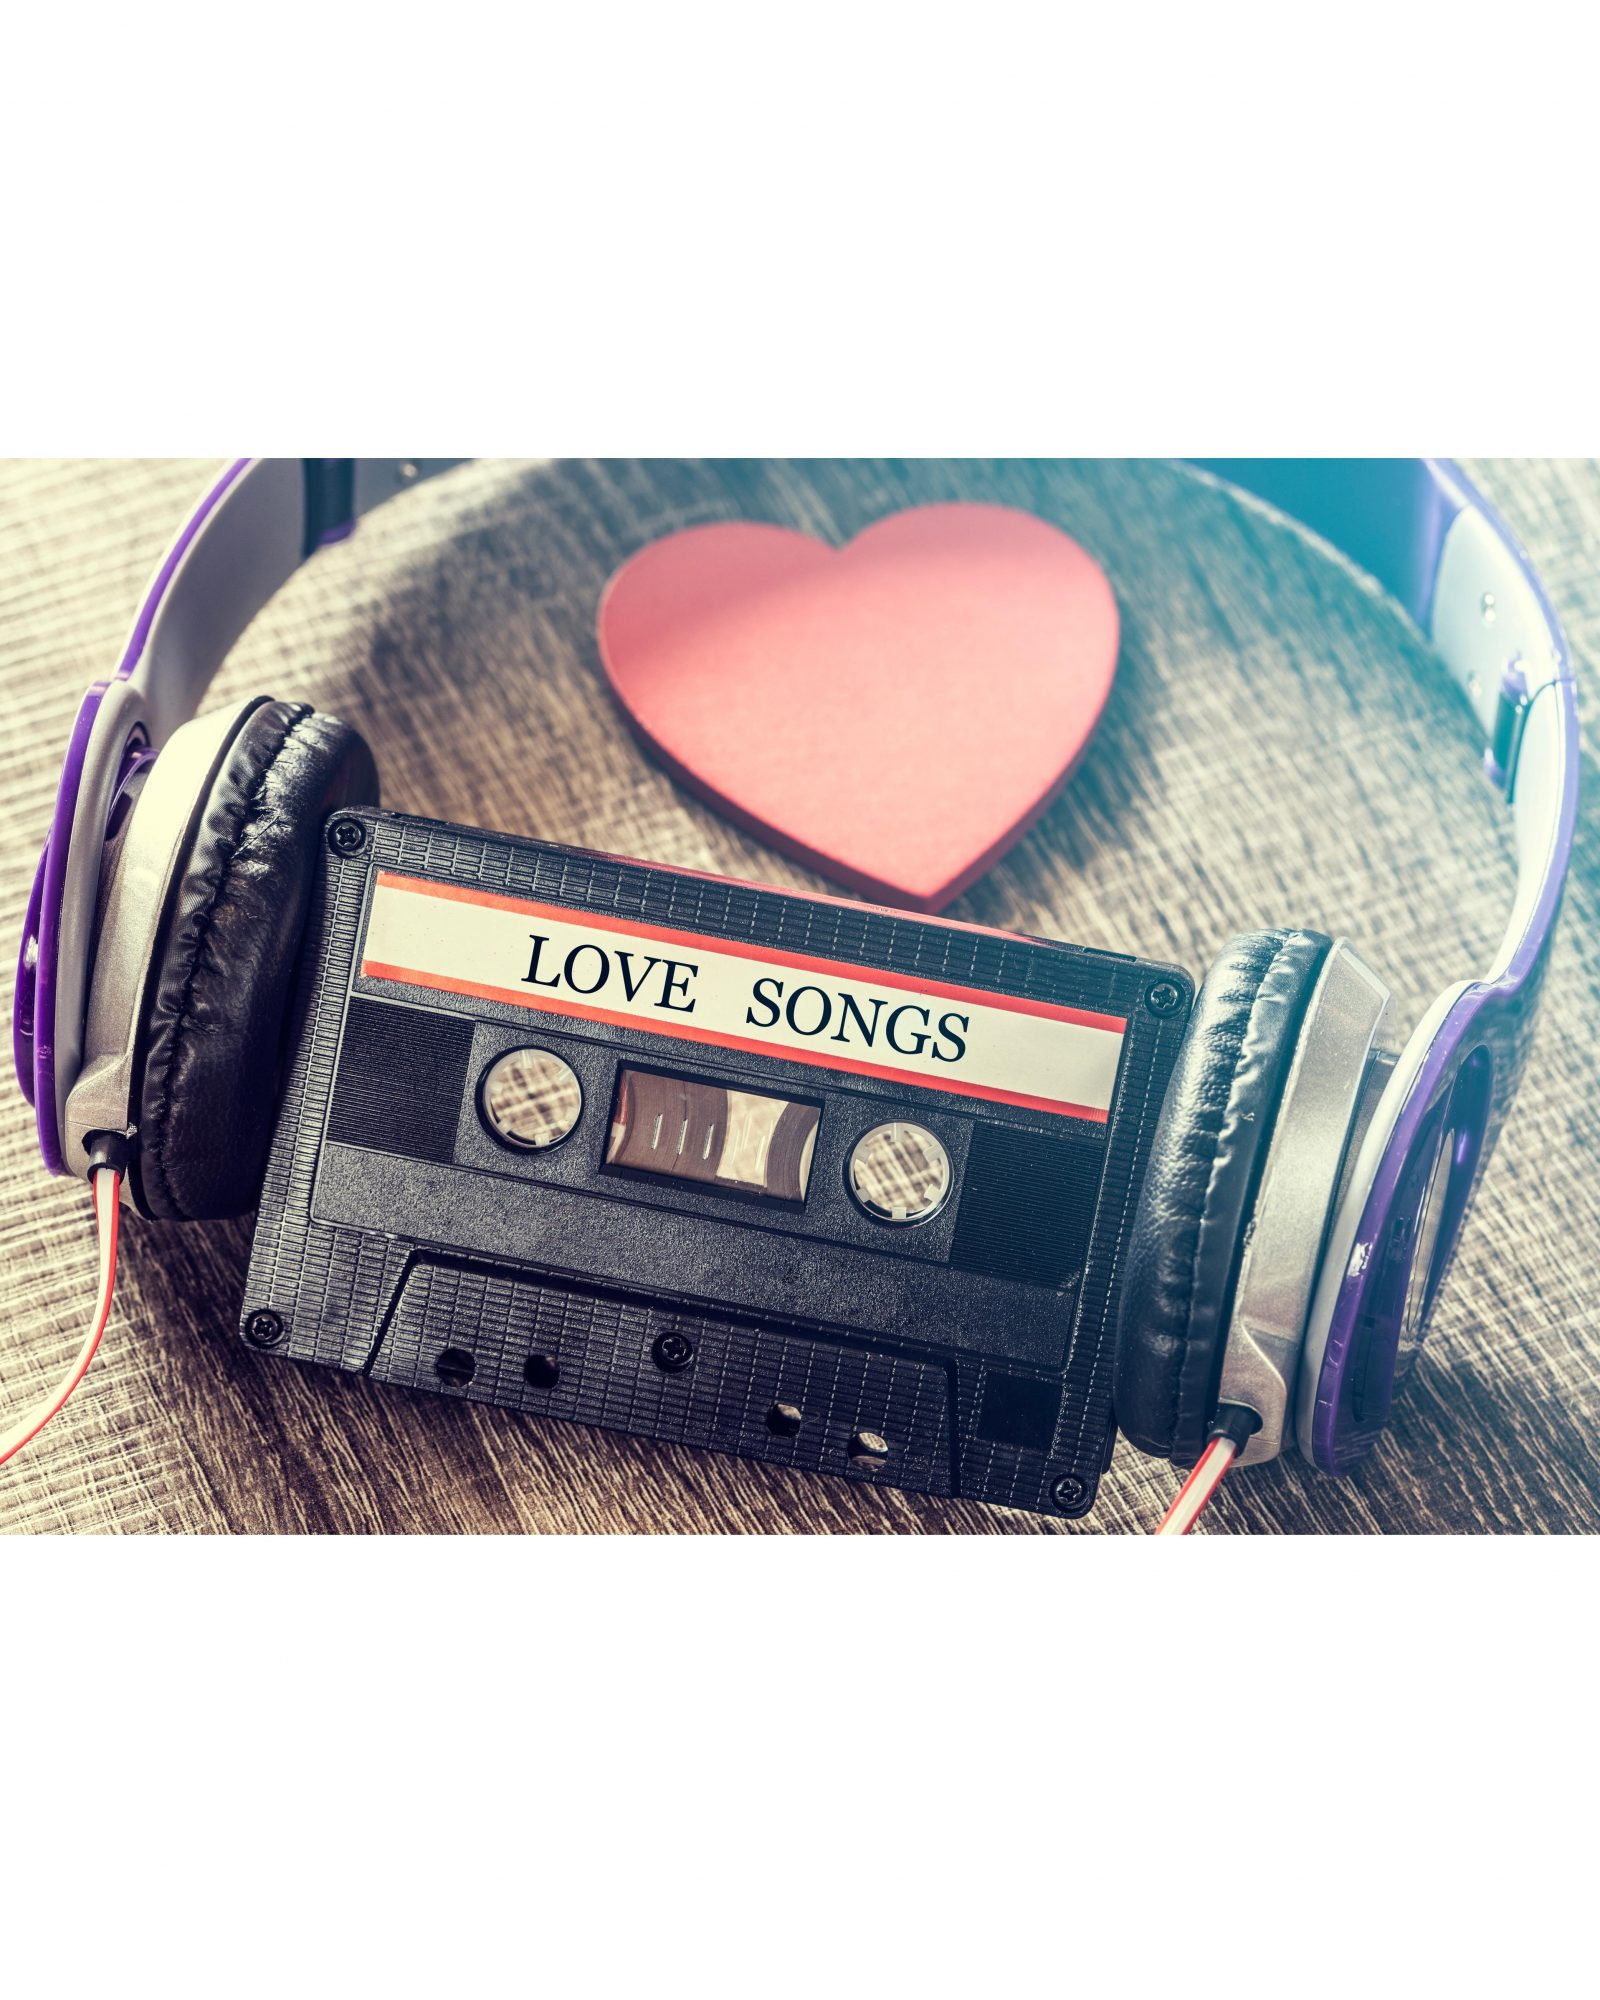 mix-tape-modern-day-love-songs-0216.jpg